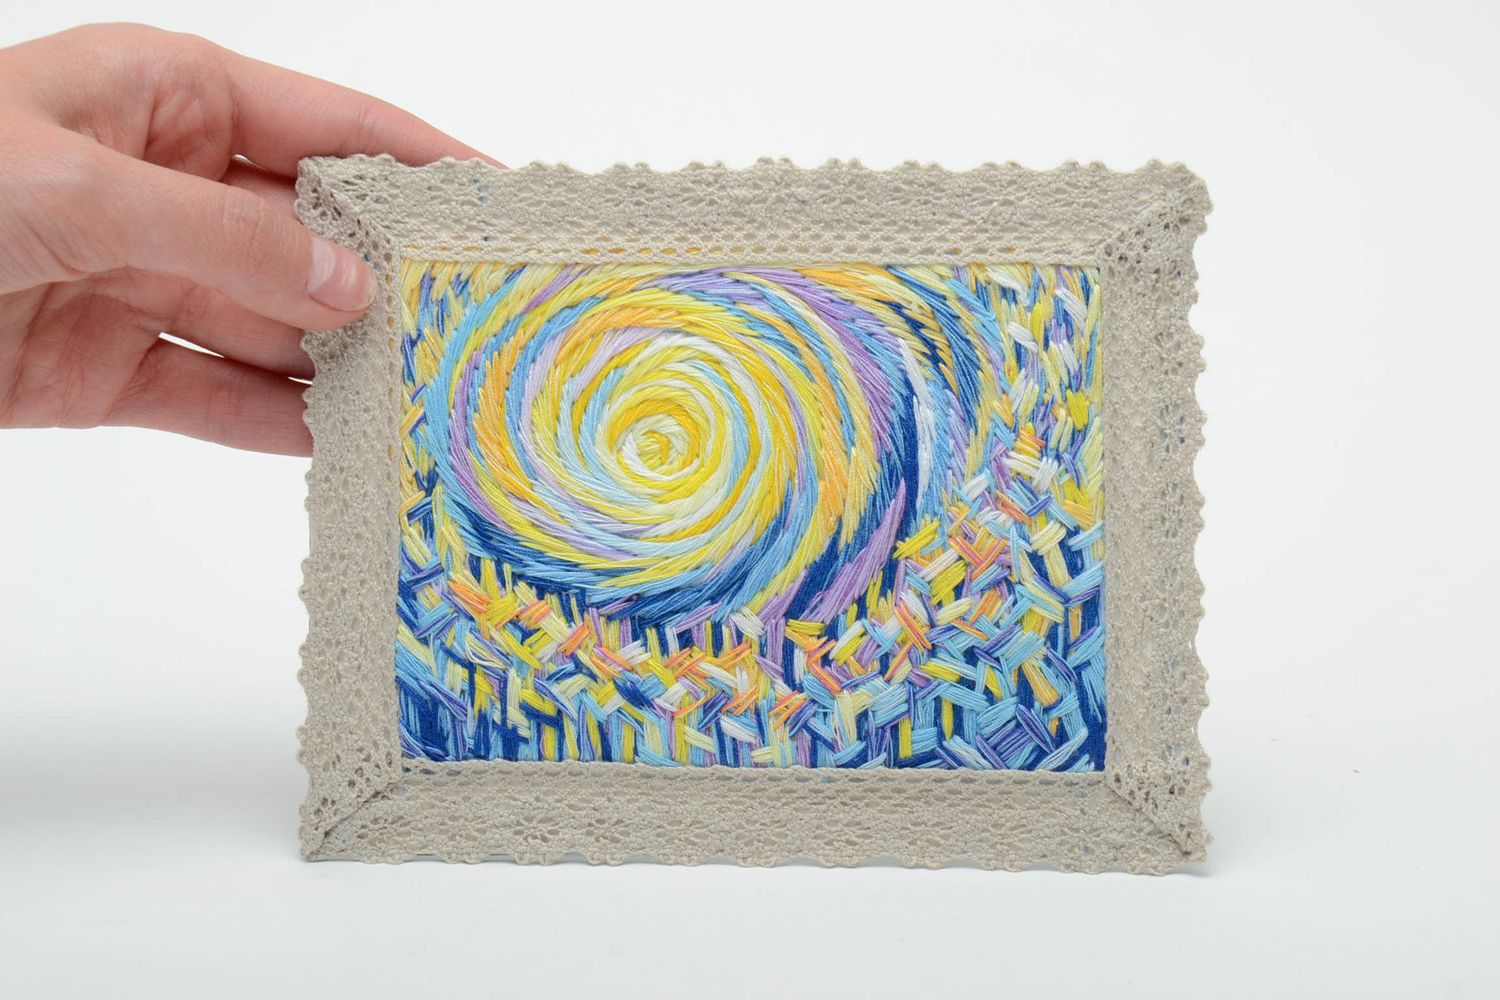 Satin stitch embroidered magnet picture with lace photo 5